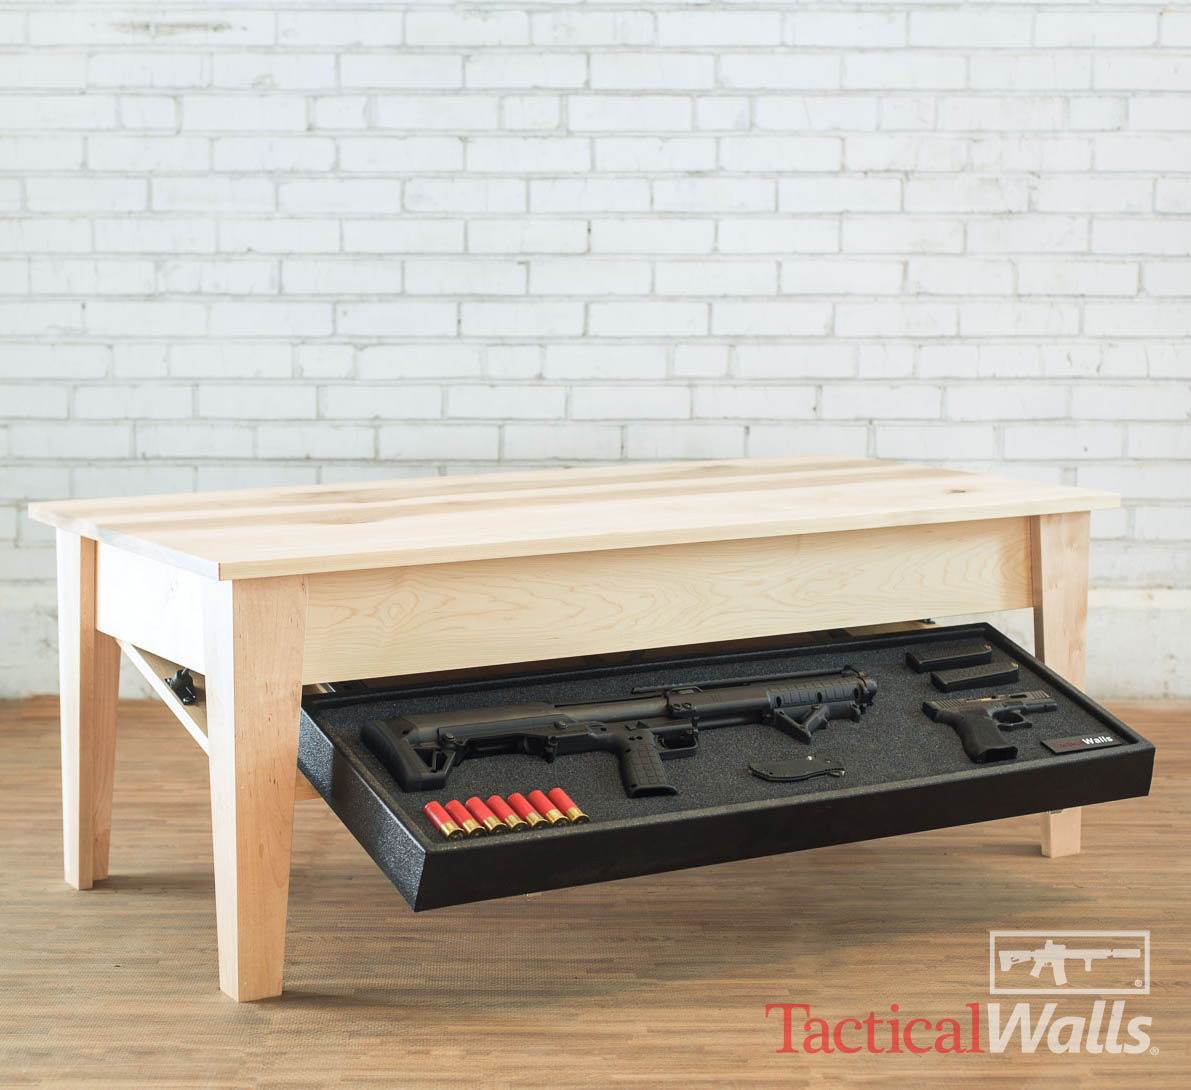 Coffee Table With Gun Drawer Plans: Tactical Walls Coffee Table